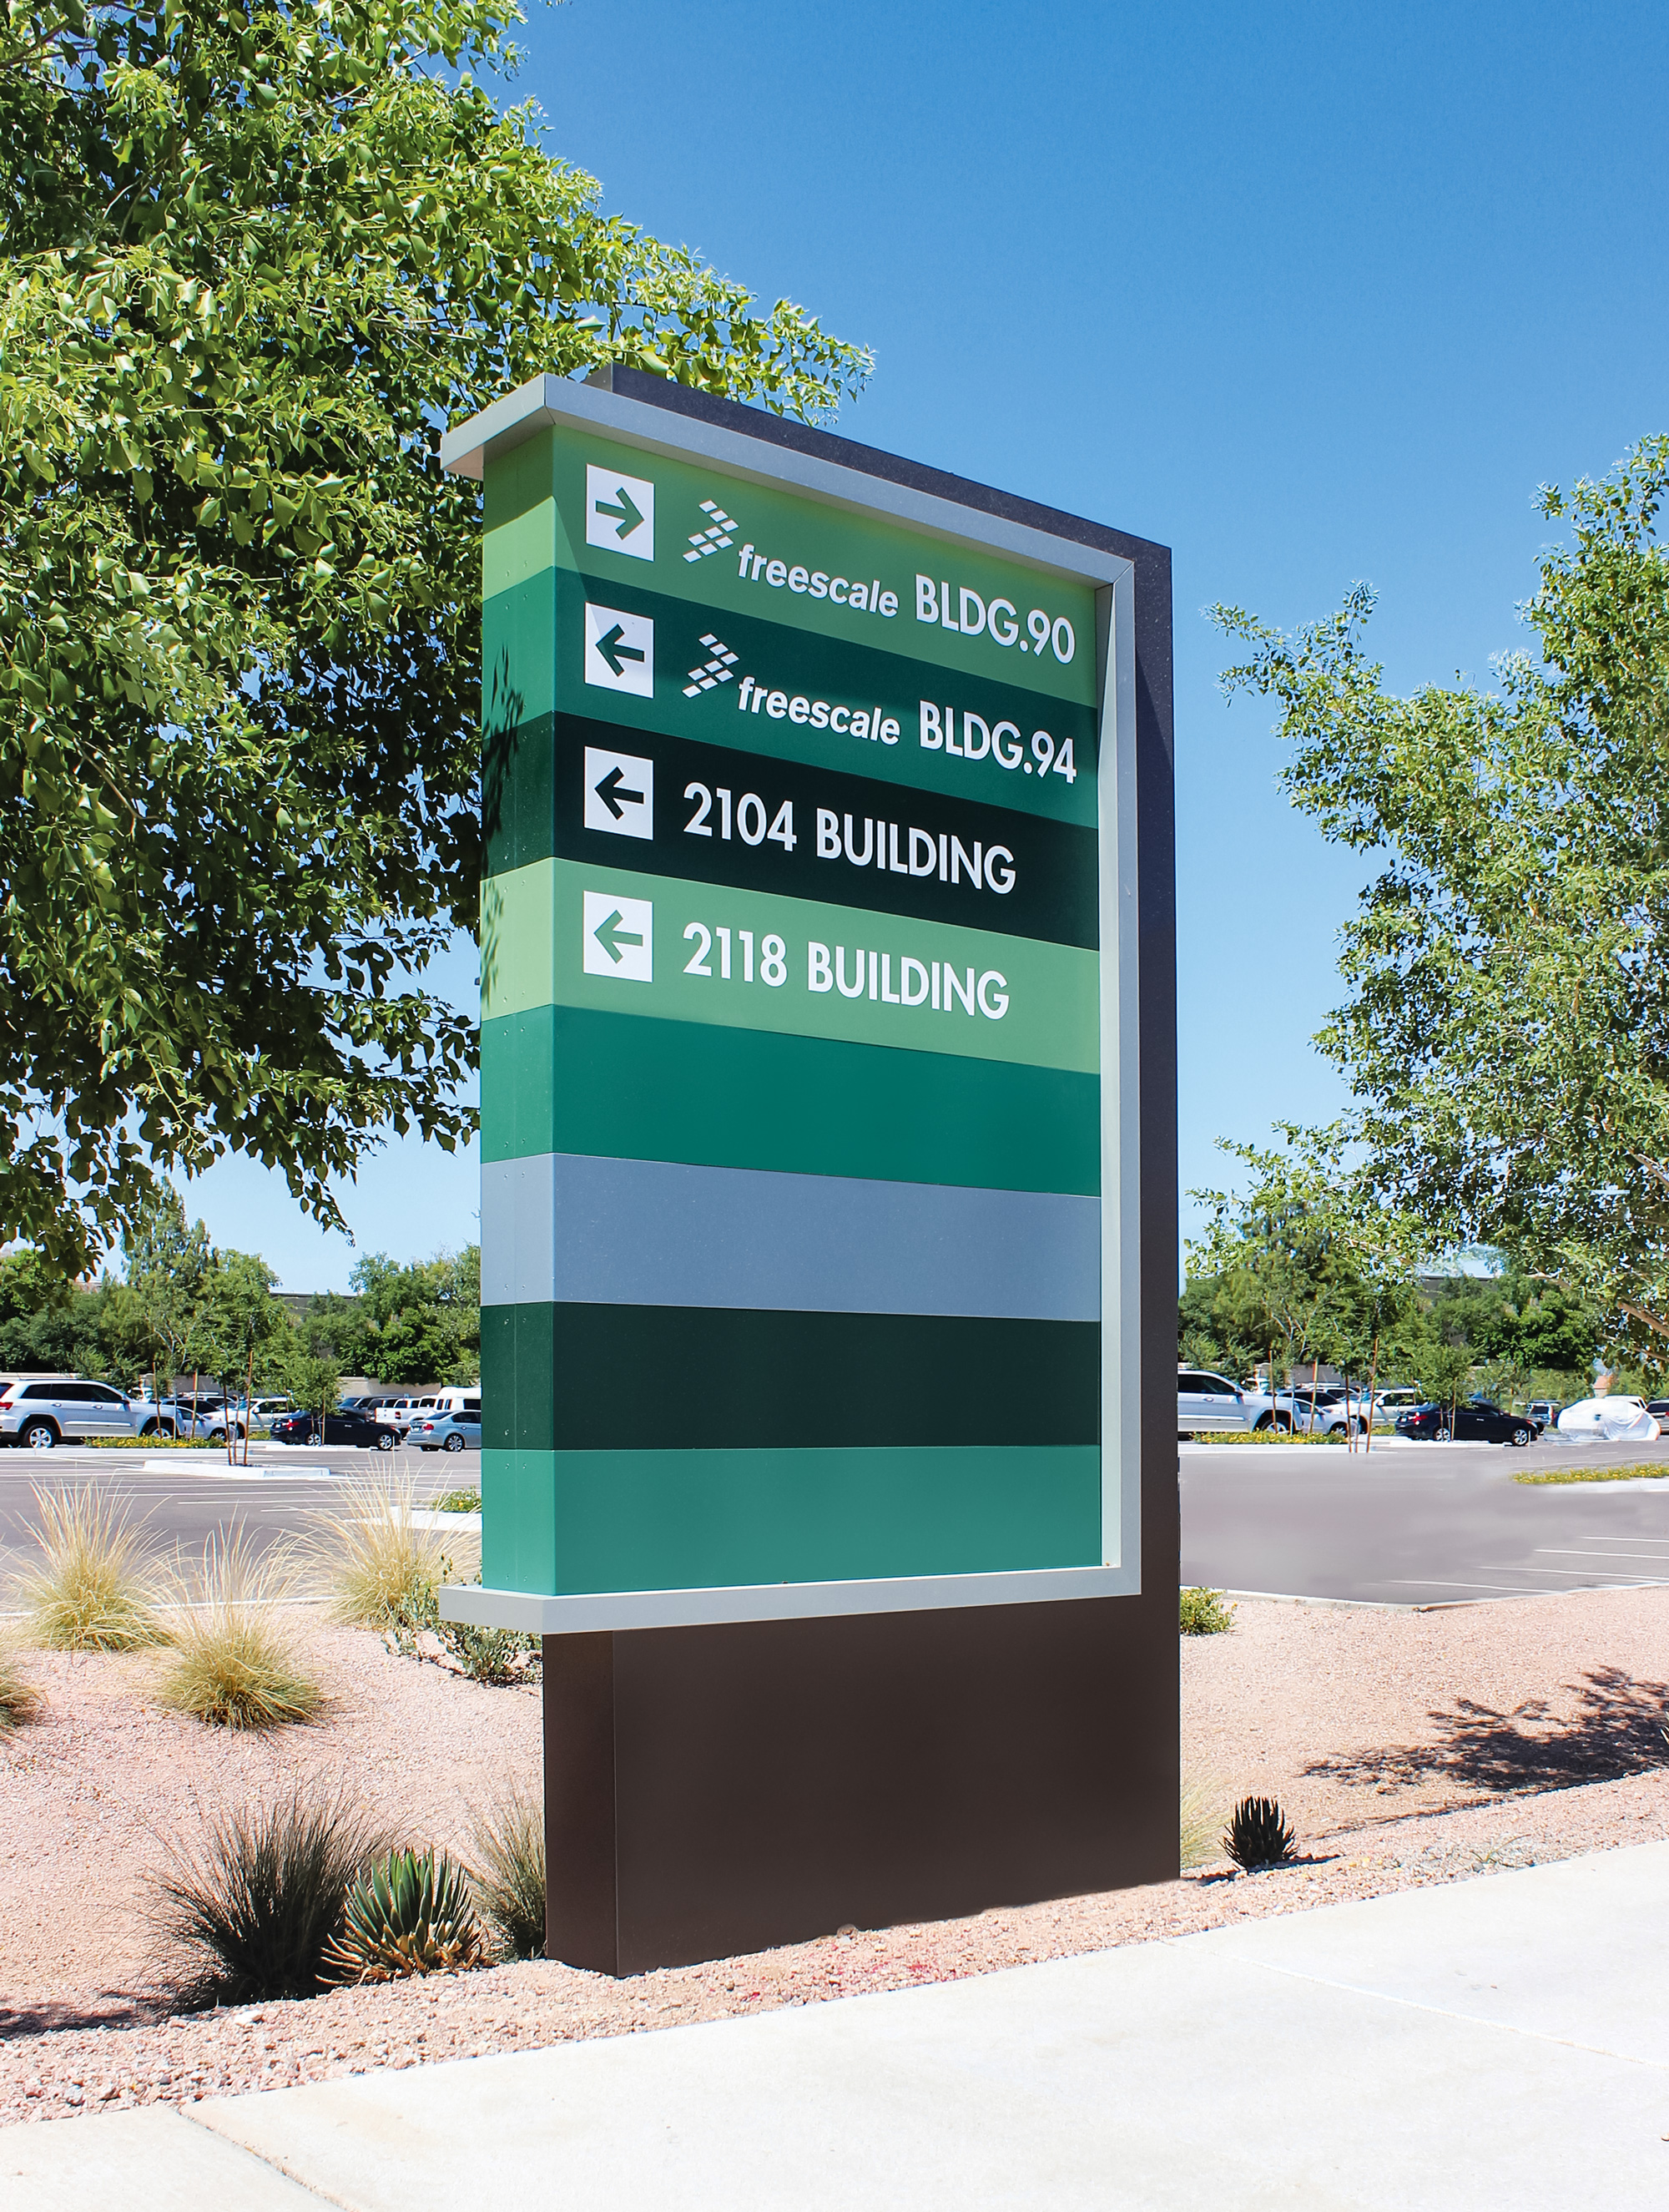 A directional sign for vehicular wayfinding helps visitors of the campus.